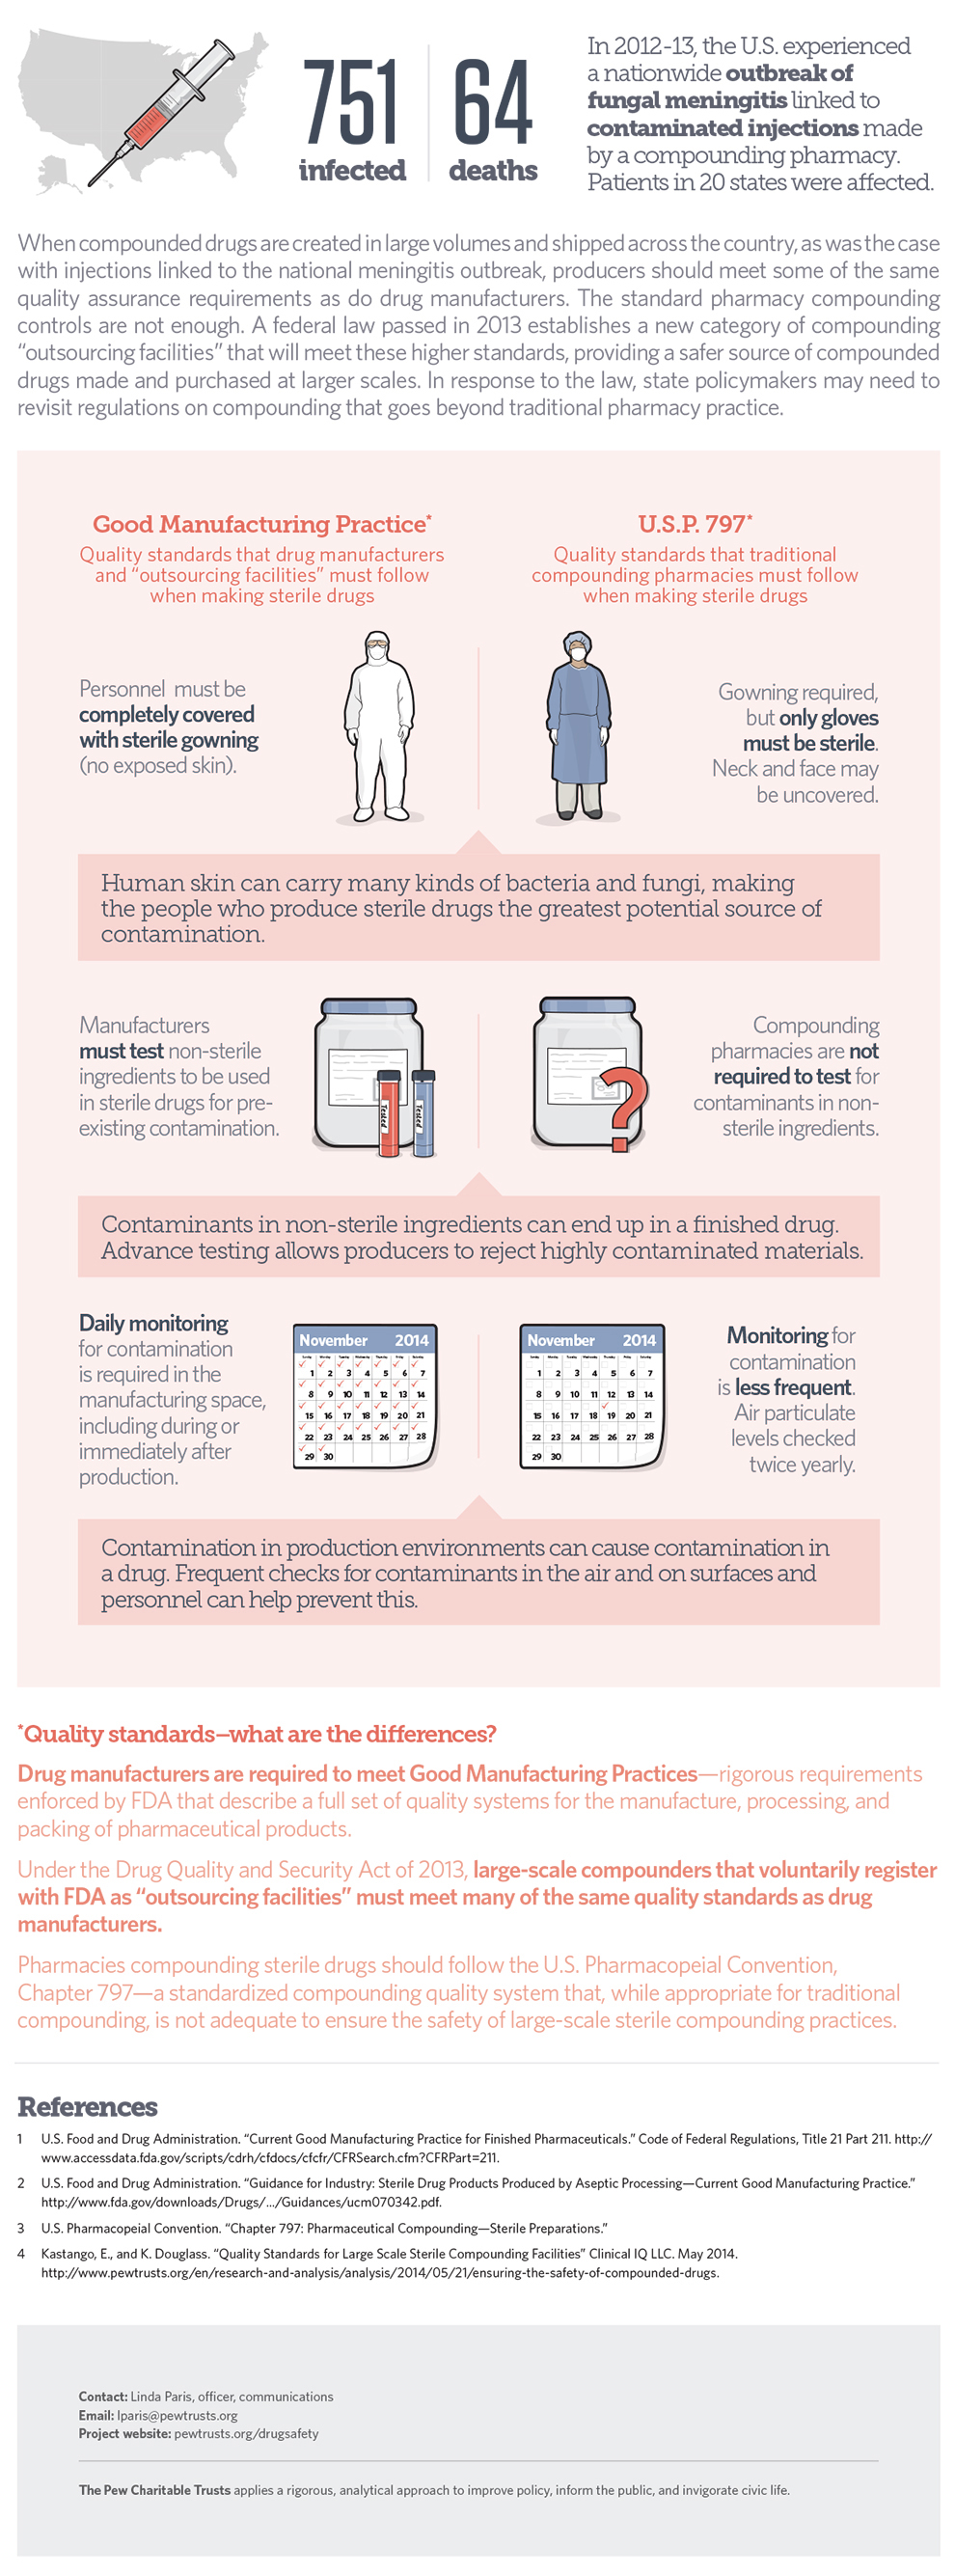 Pharmaceutical Compounding infographic